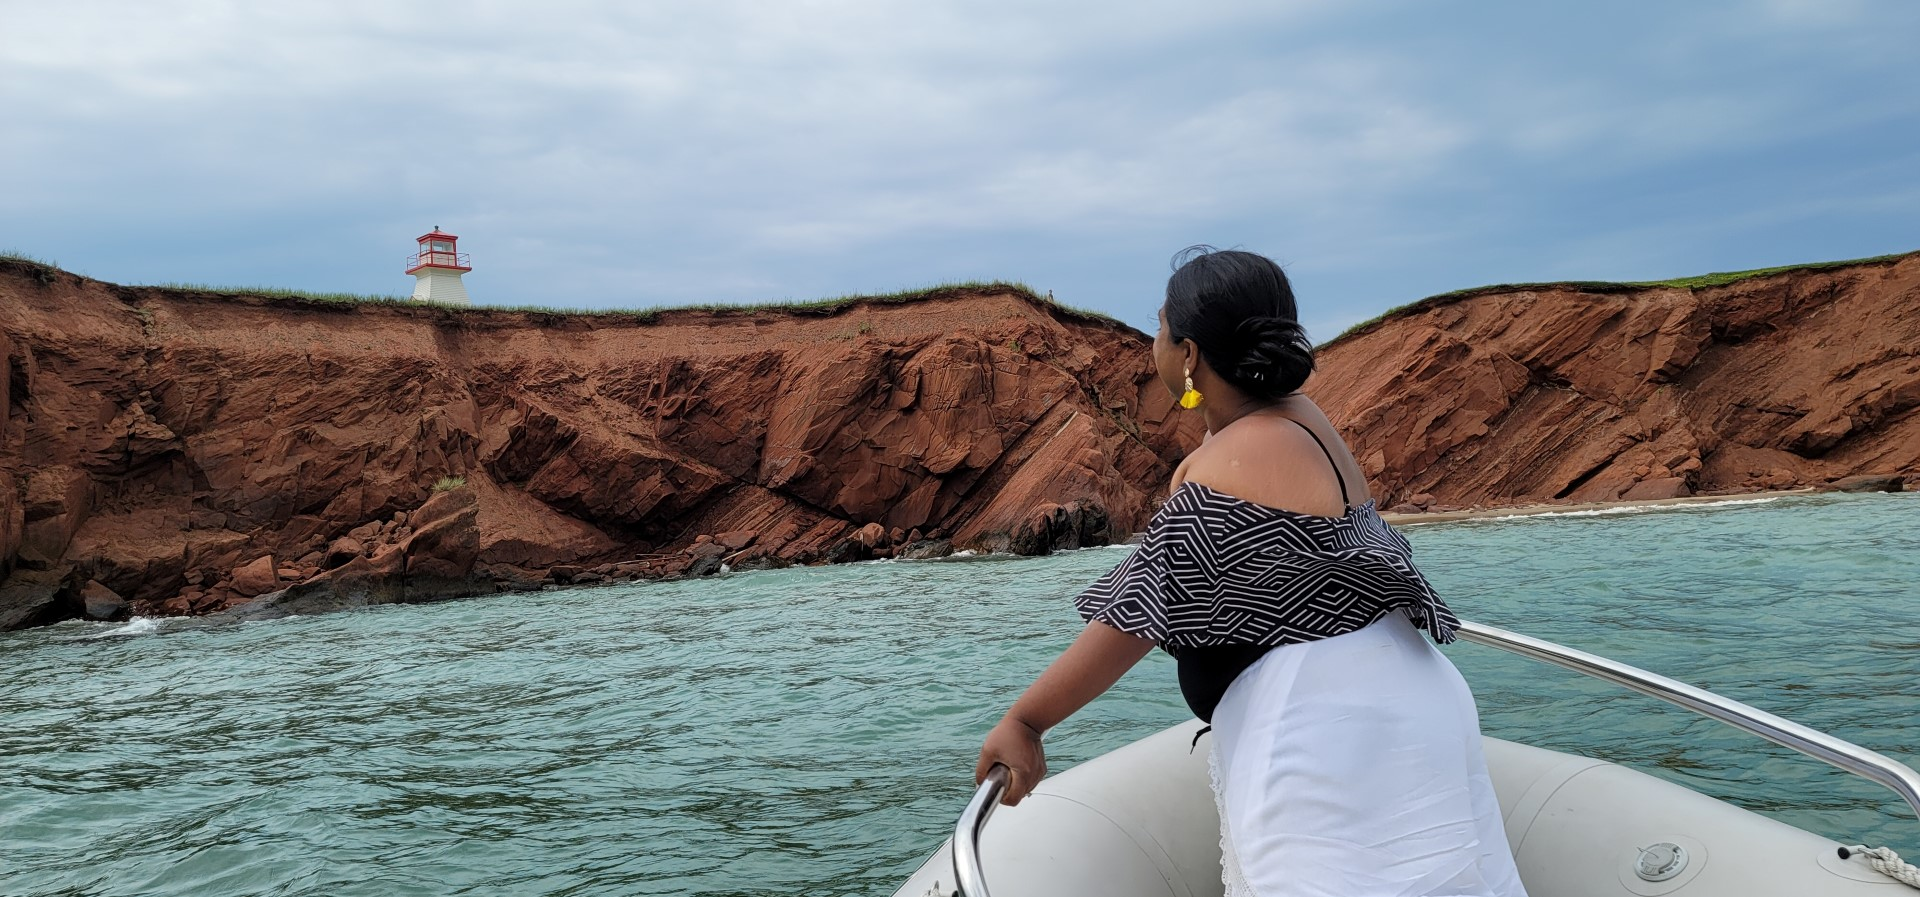 Lady looking on a boat looking at red cliffs and blue water